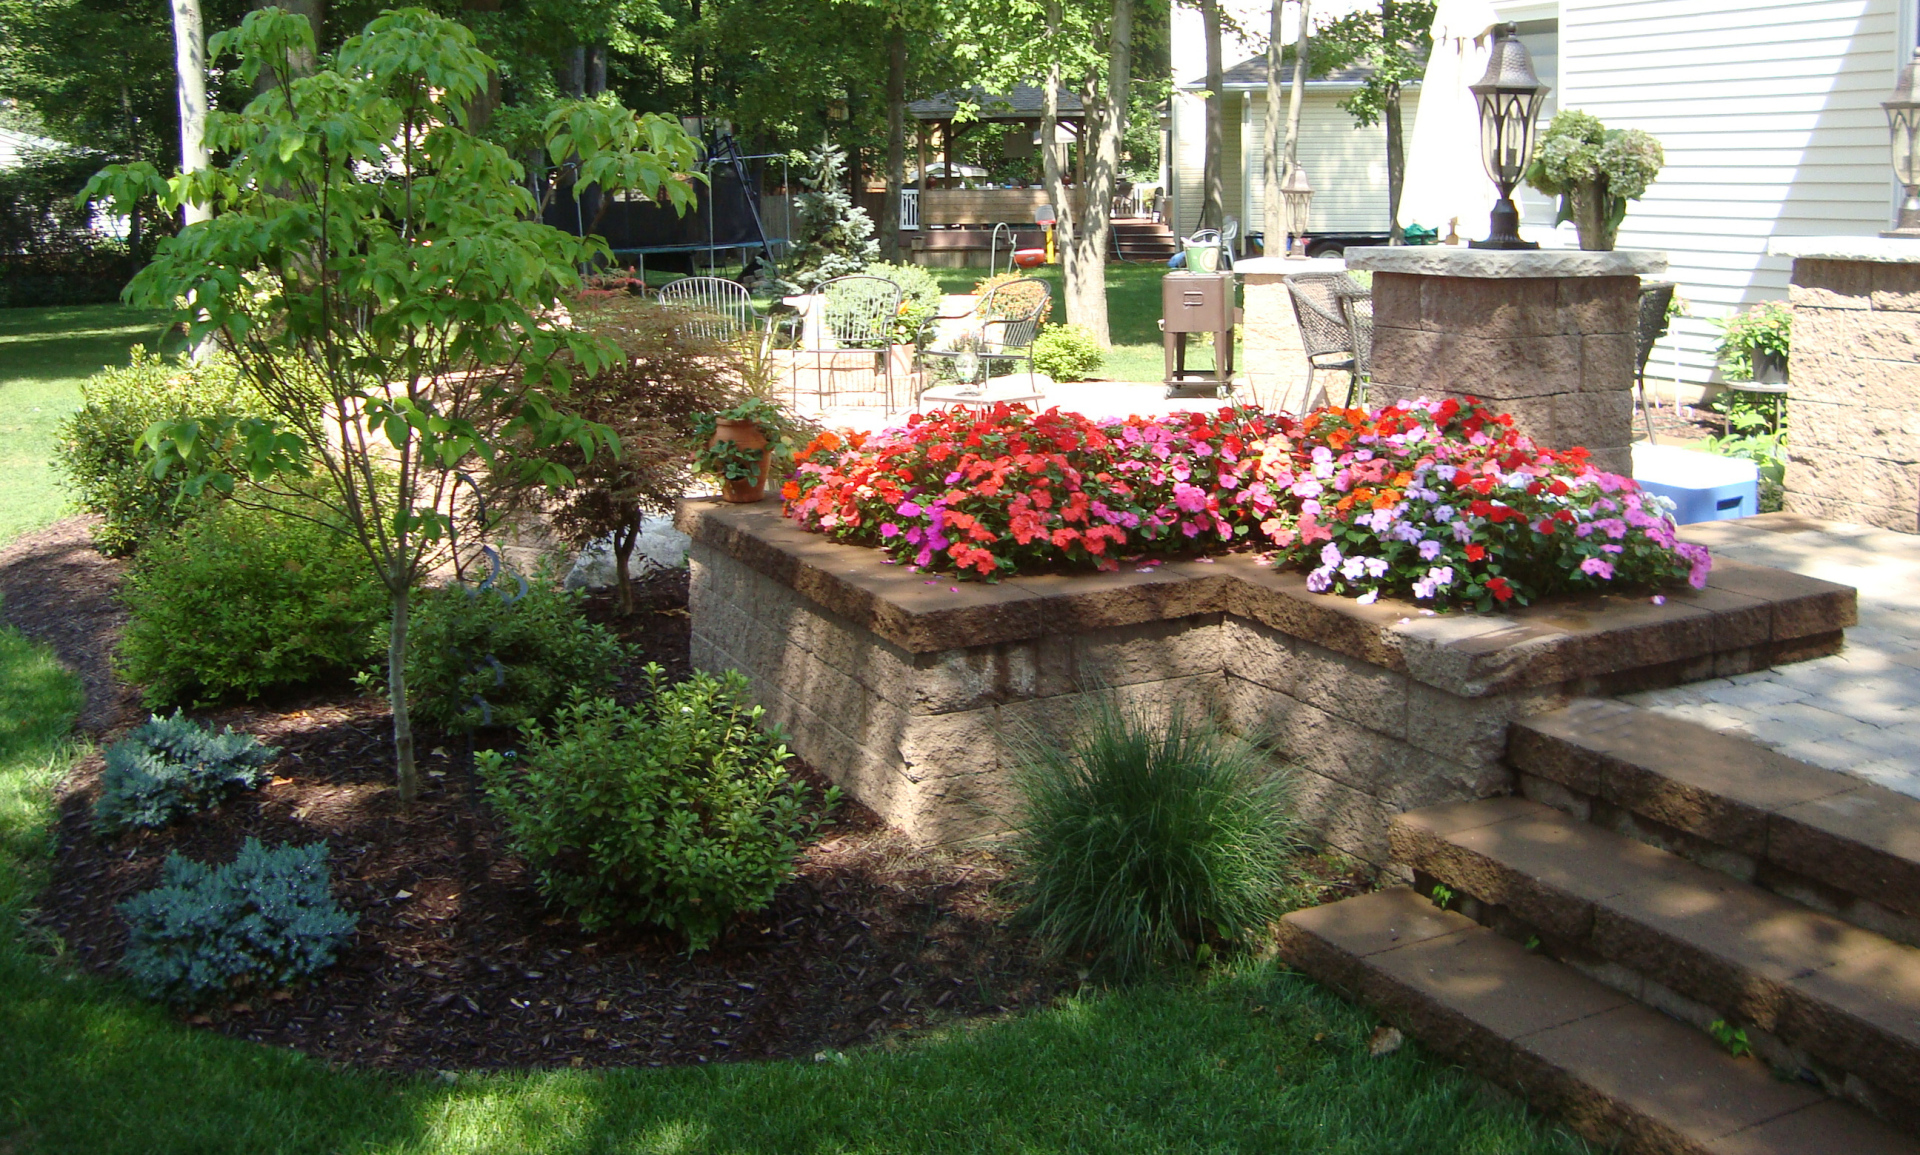 Beds/Plantings